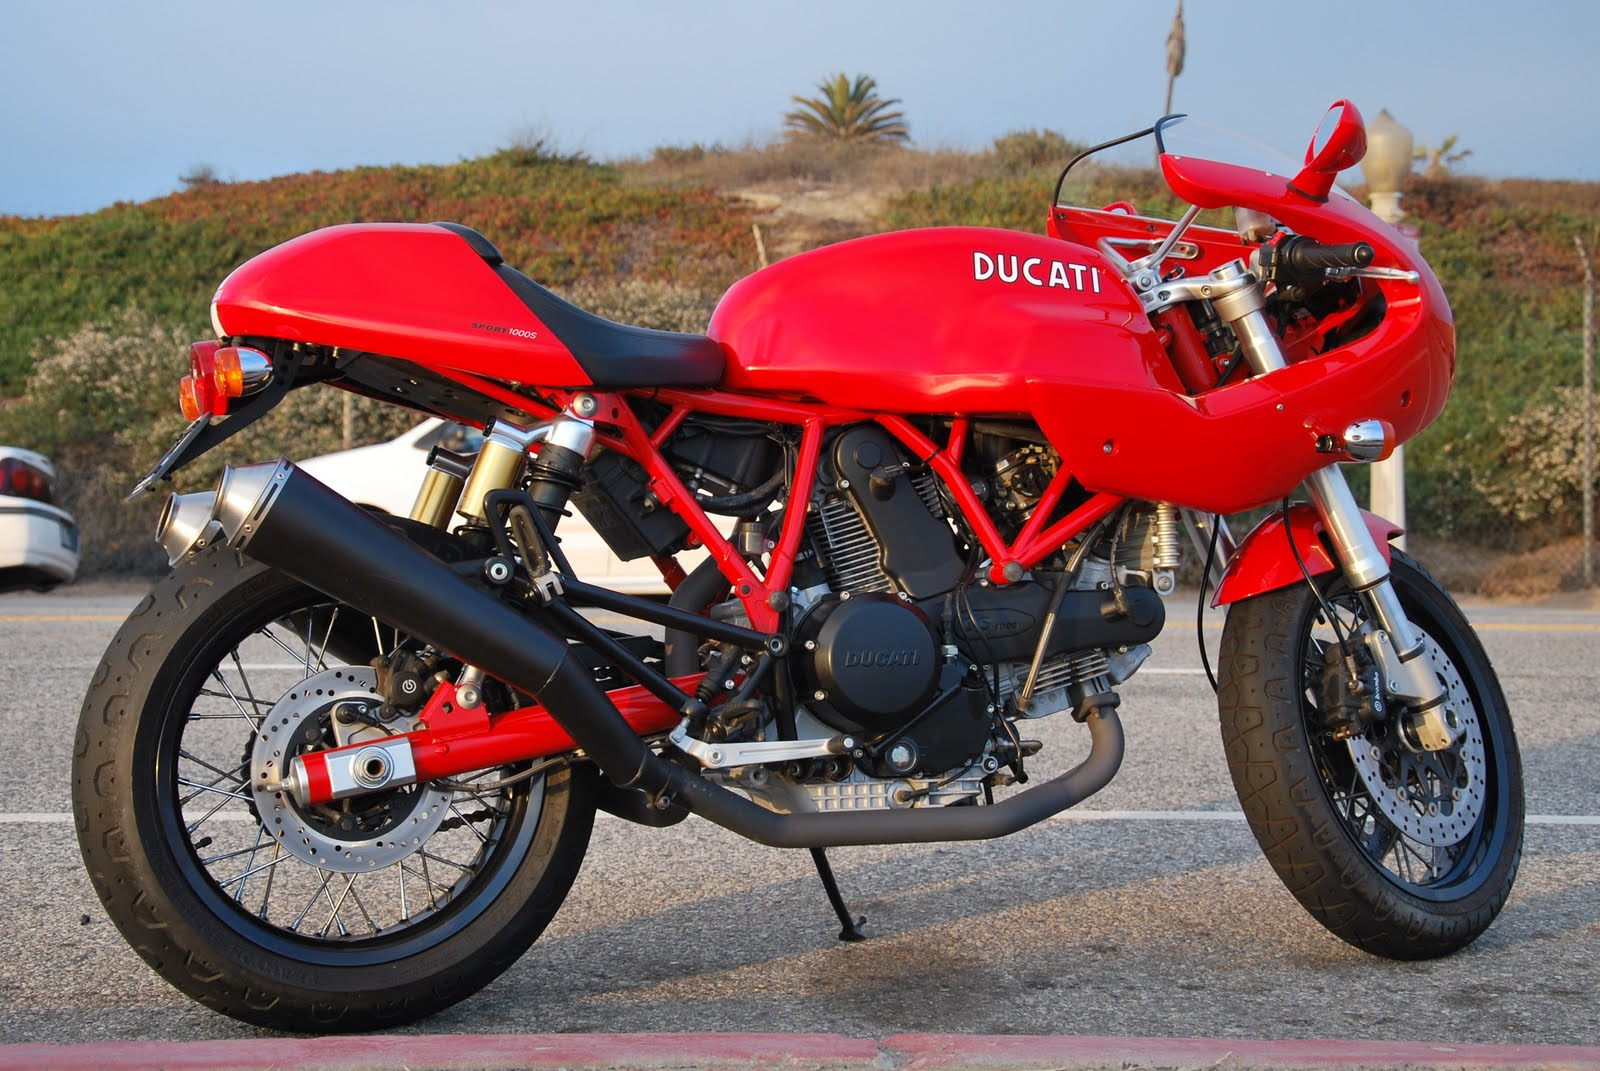 2008 ducati sport classic 1000s for sale  u00ab the motoring